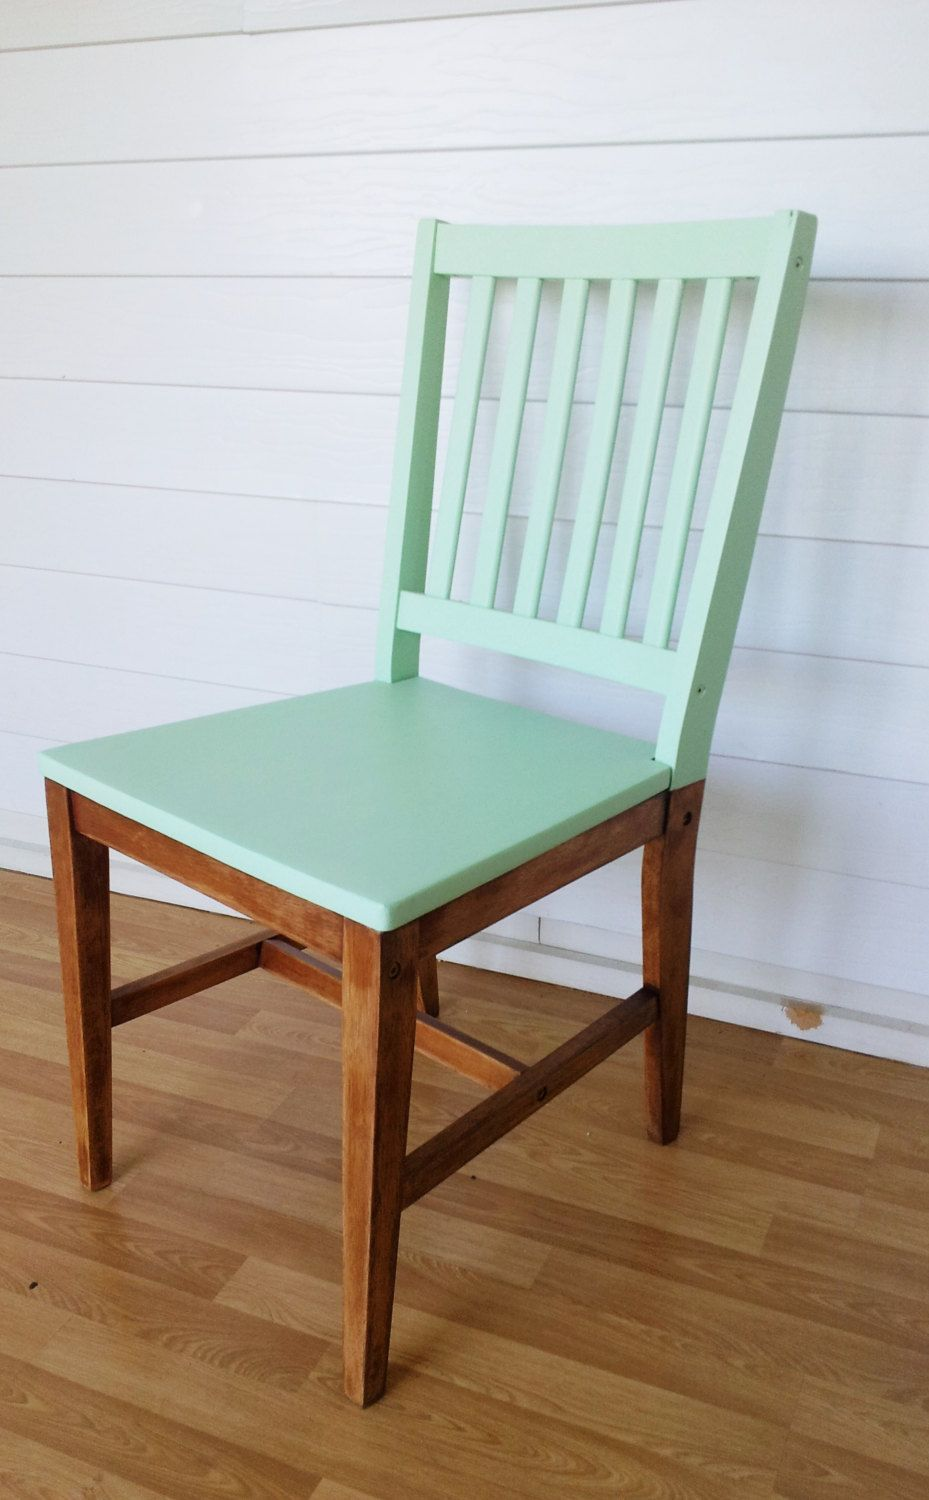 Wooden Chairs Pictures Chair Cover Hire Forest Of Dean Genius Paint Just The Top Your Old To Give Them A Fresh Minty Look Love This Idea